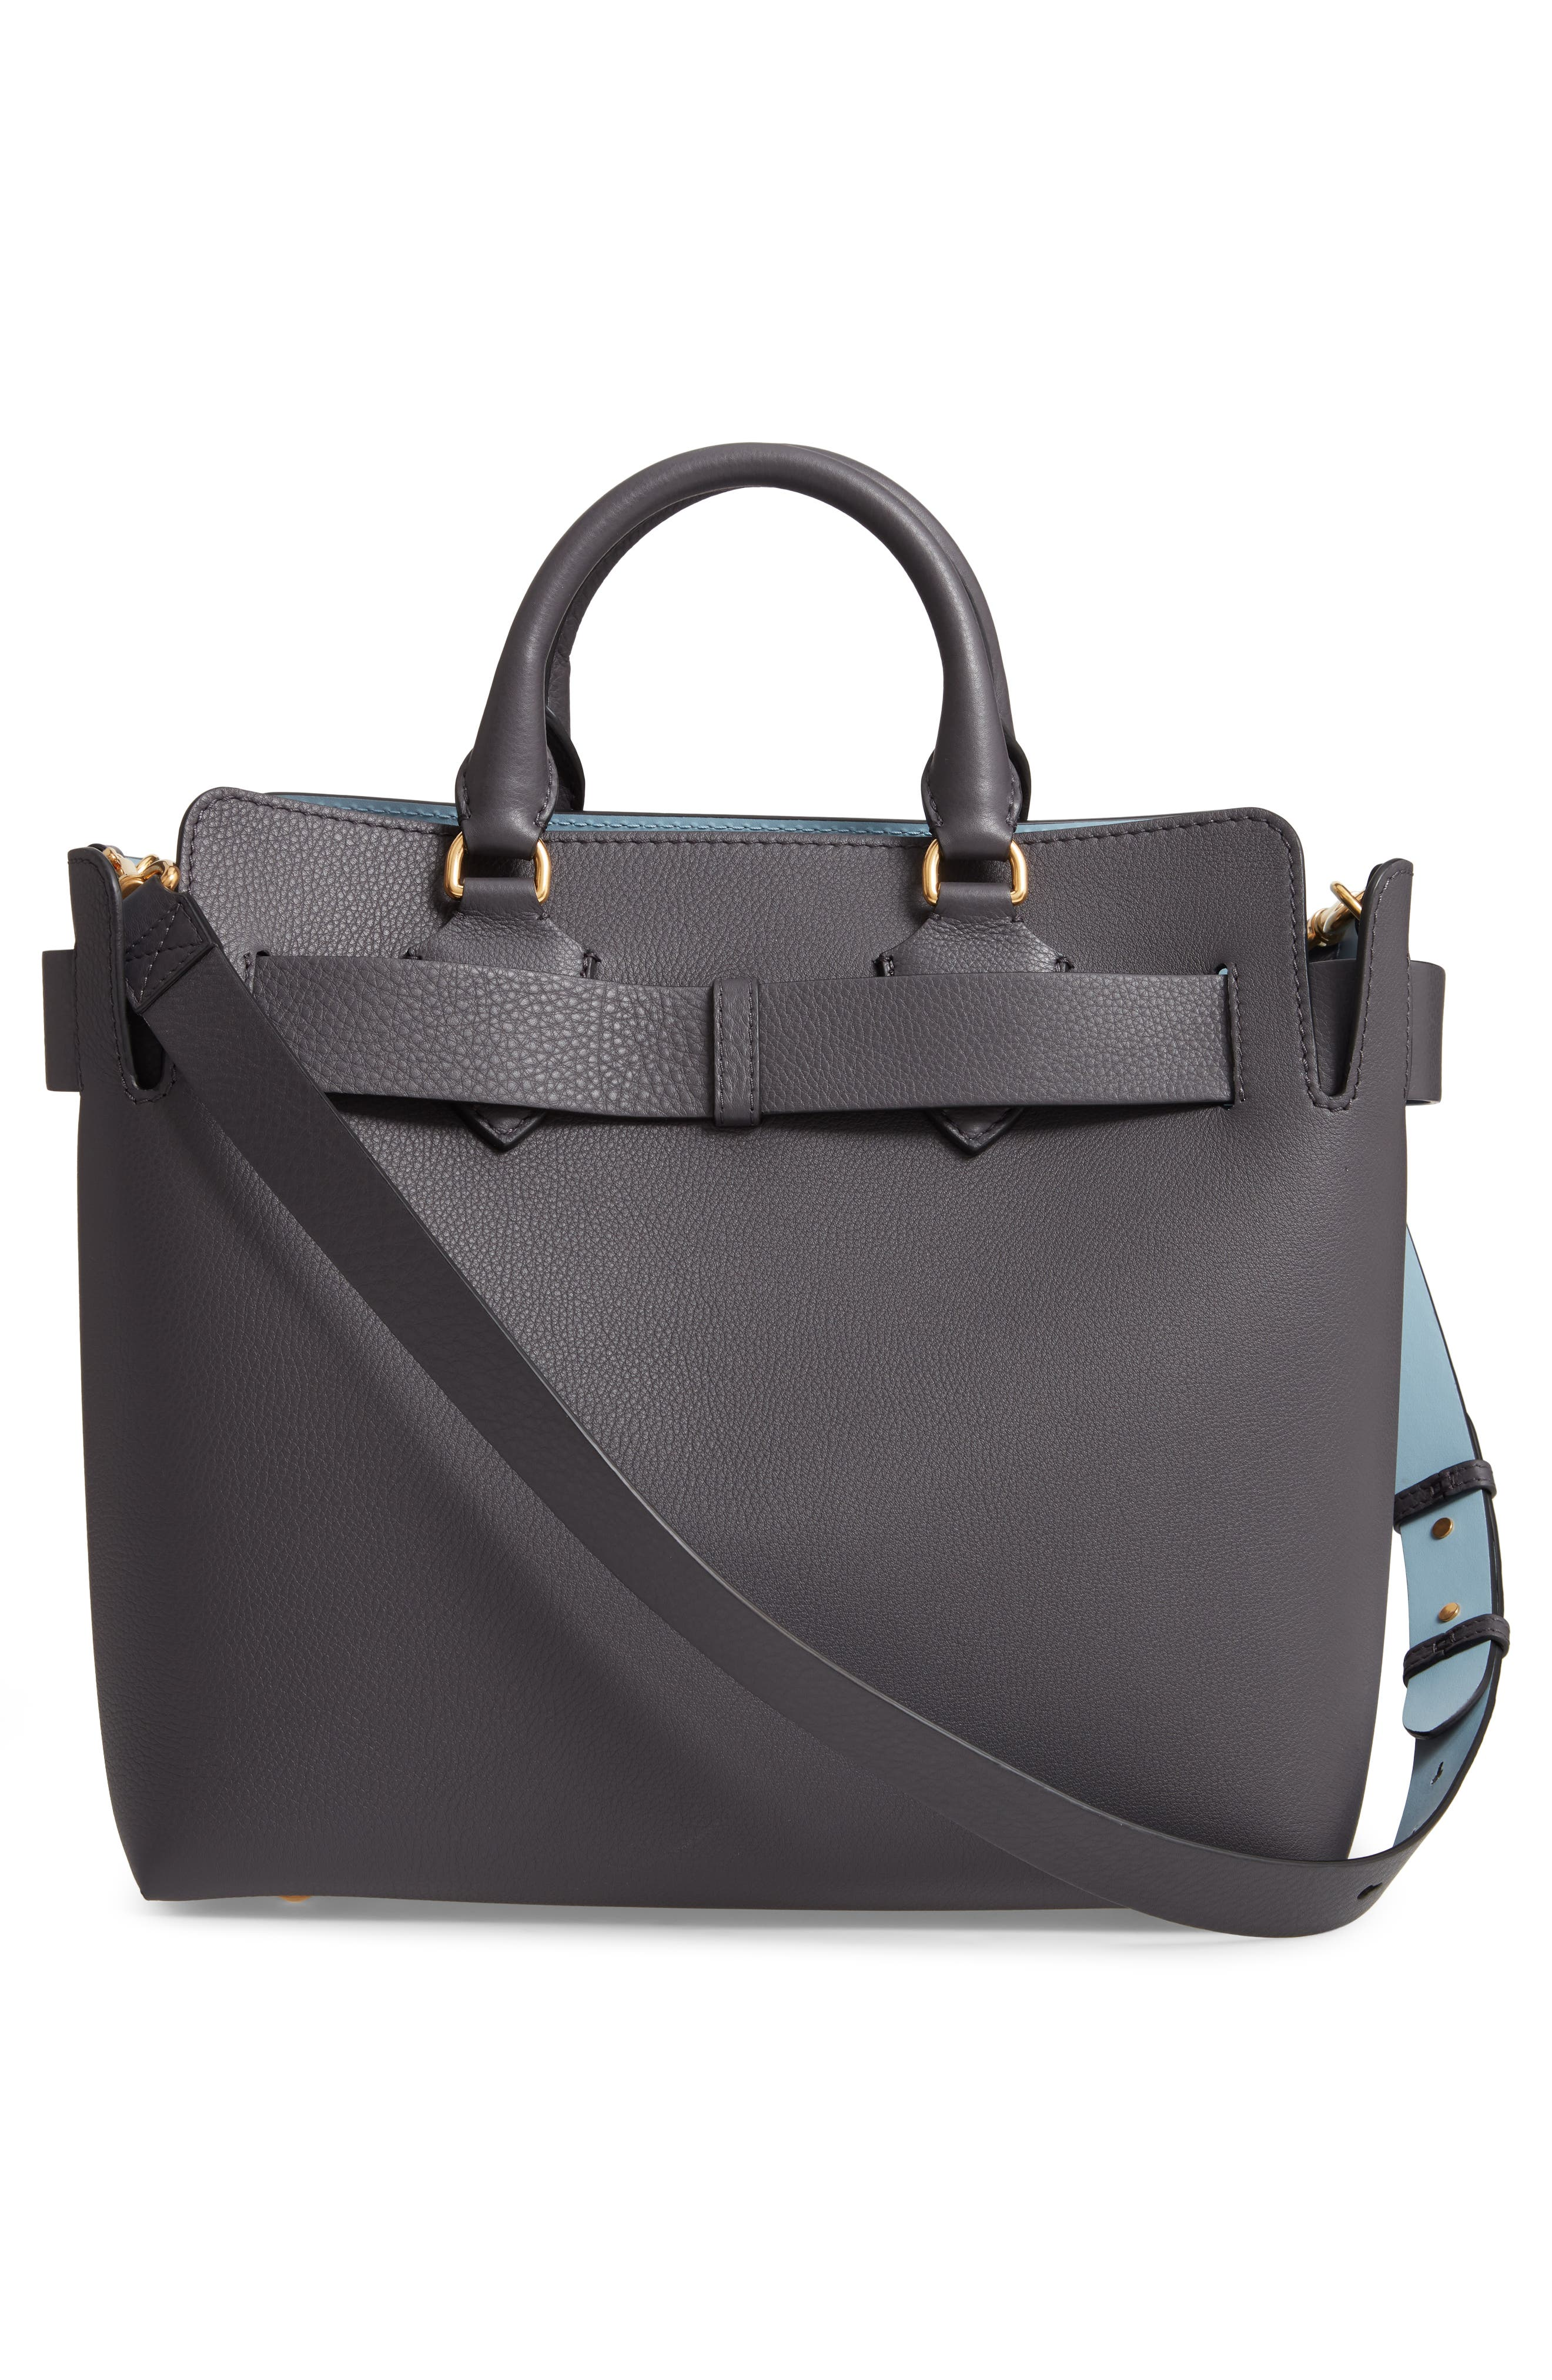 Medium Leather Belted Bag,                             Alternate thumbnail 3, color,                             CHARCOAL GREY